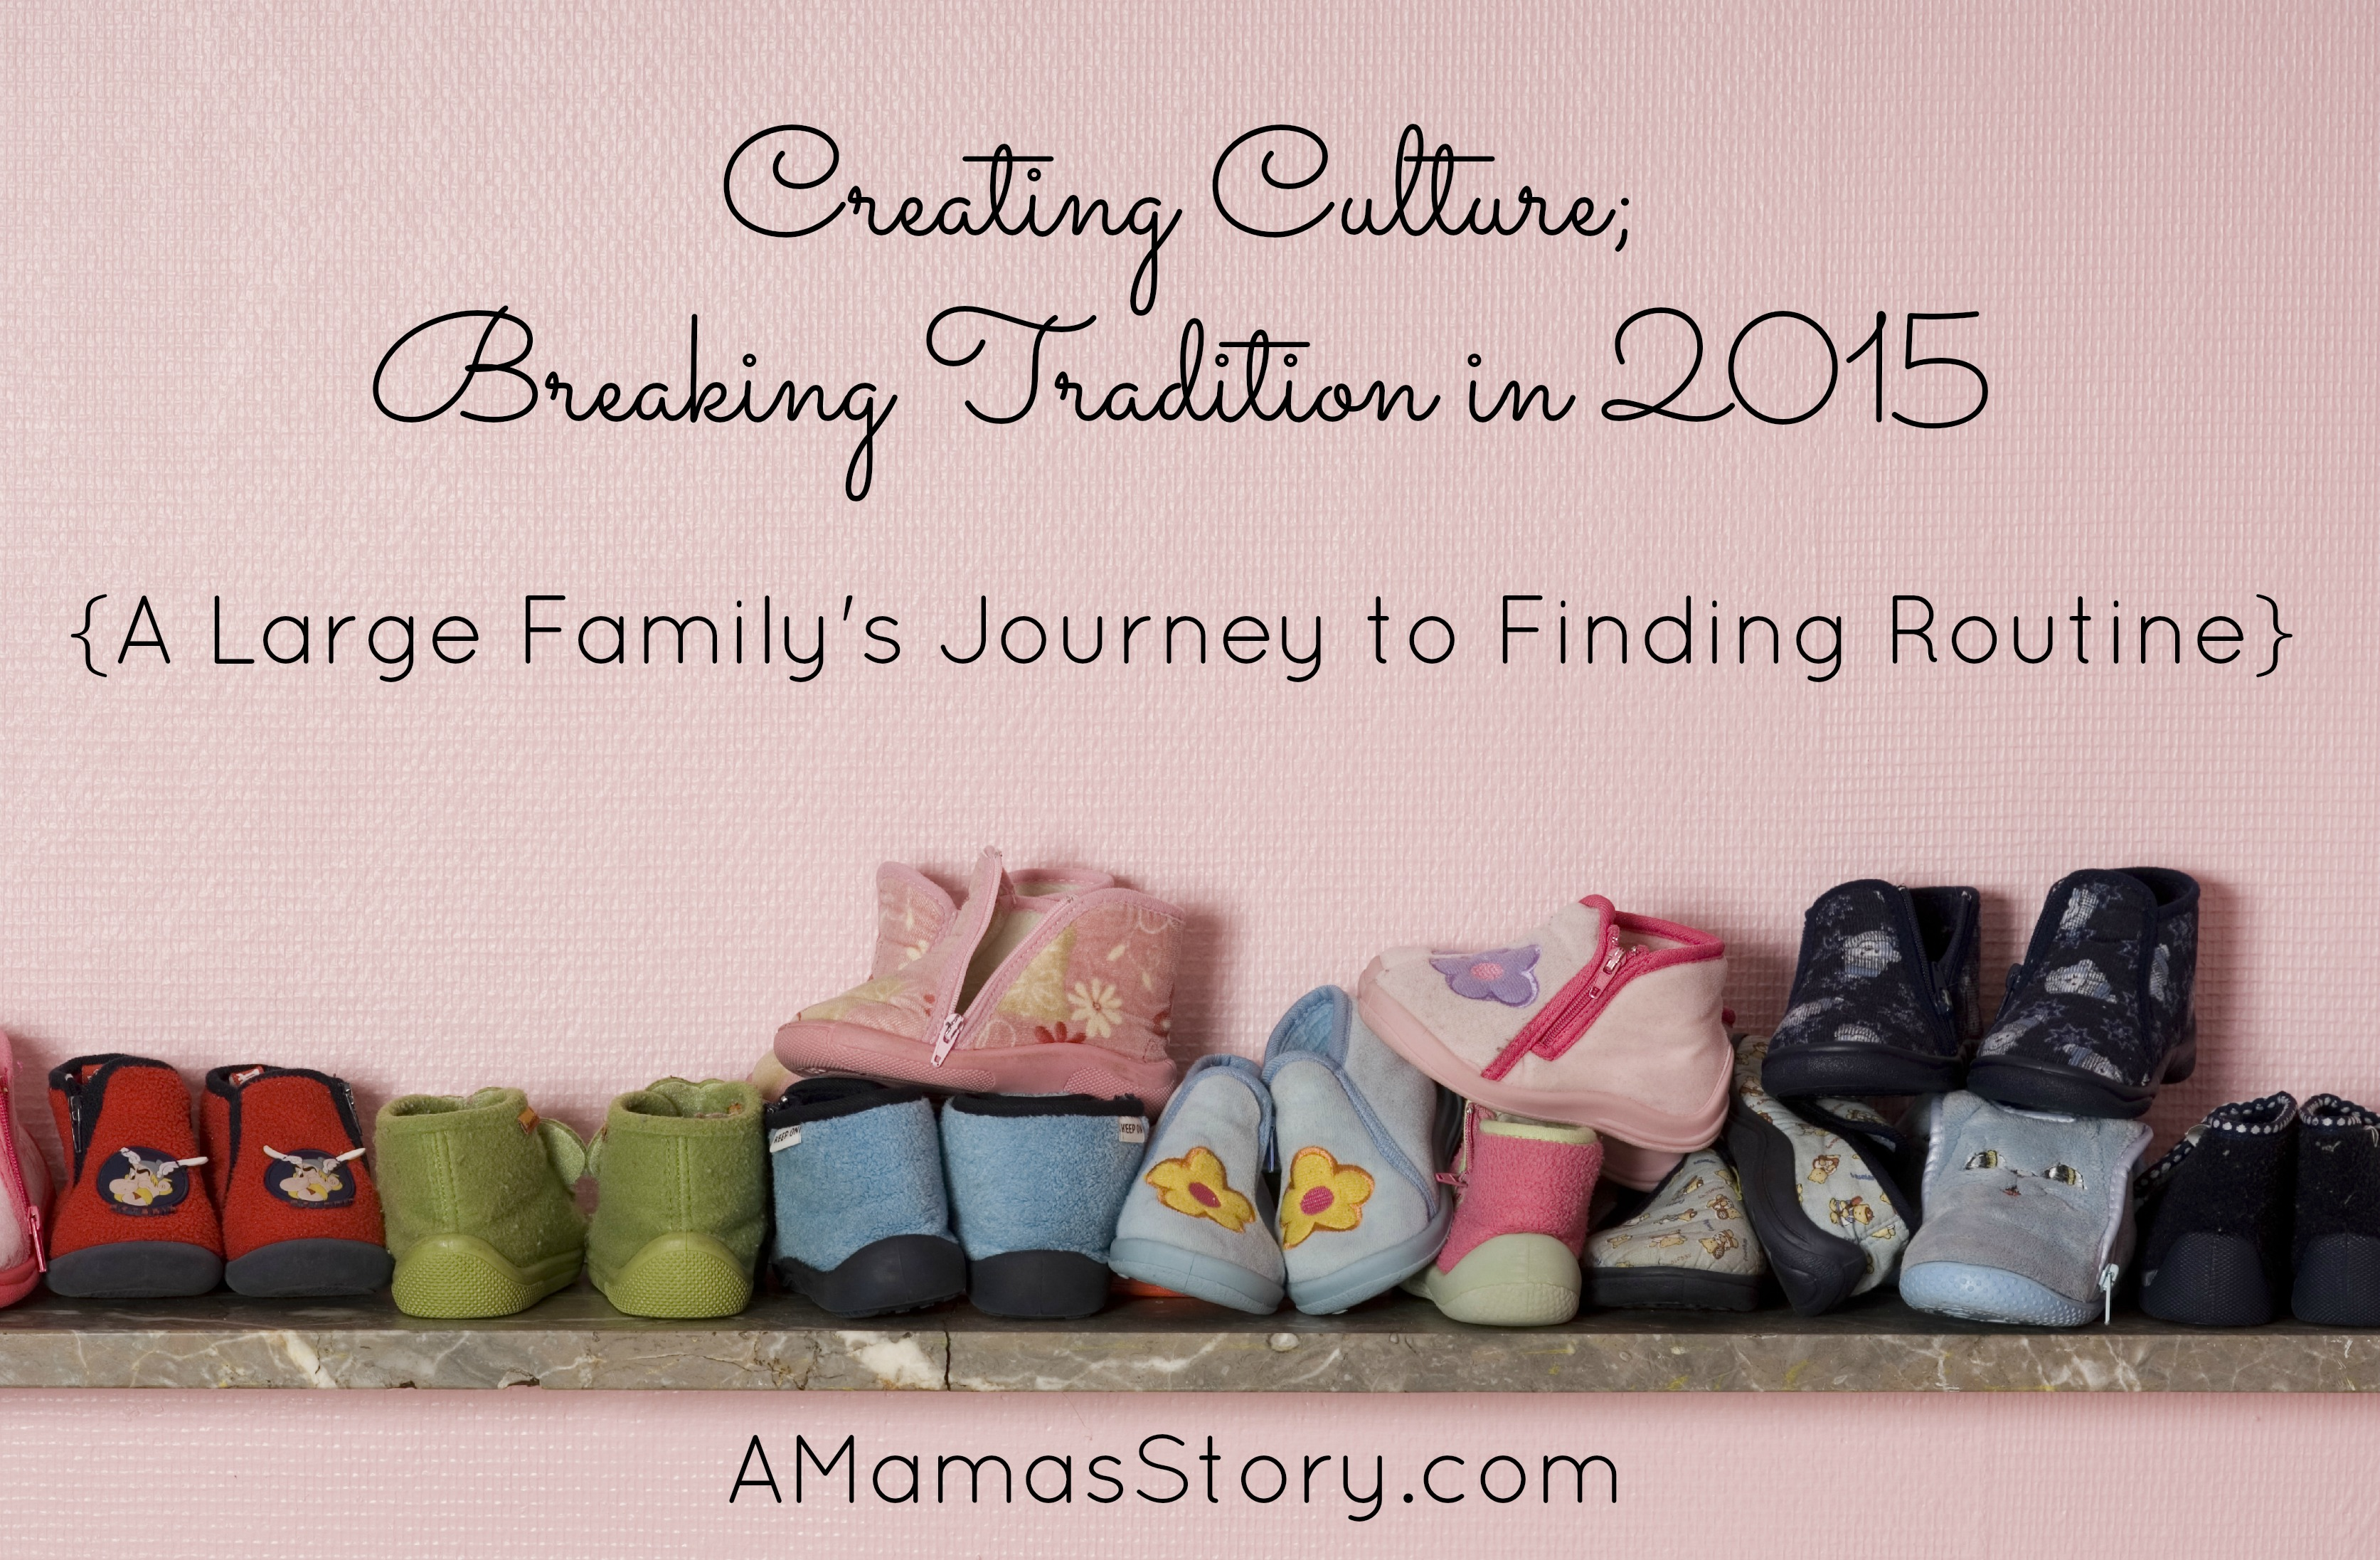 Creating Culture; Breaking Tradition in 2015 {A Large Family's Journey to Finding Routine}